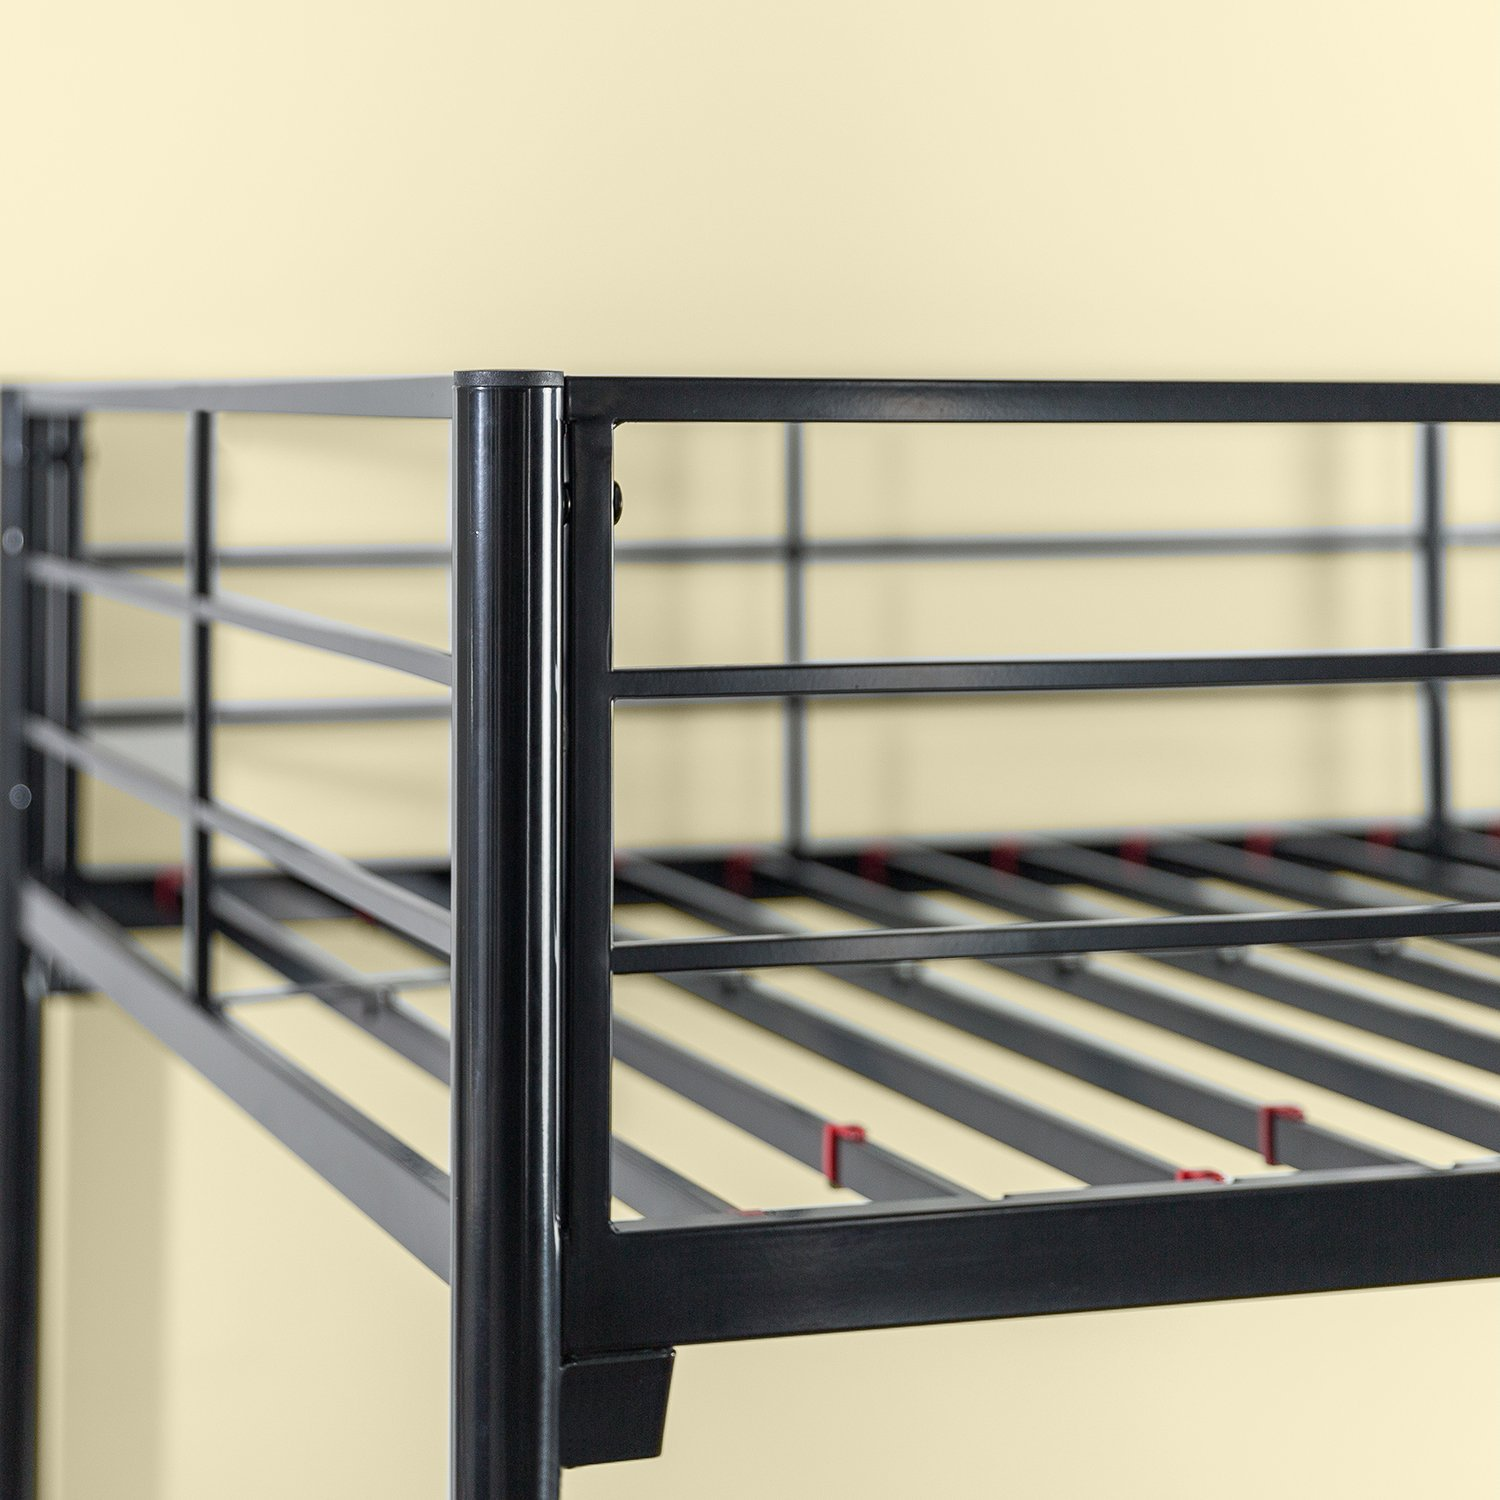 Zinus Hani Easy Assembly Quick Lock Metal Bunk Bed Quick To Assemble in Under an Hour Twin over Full